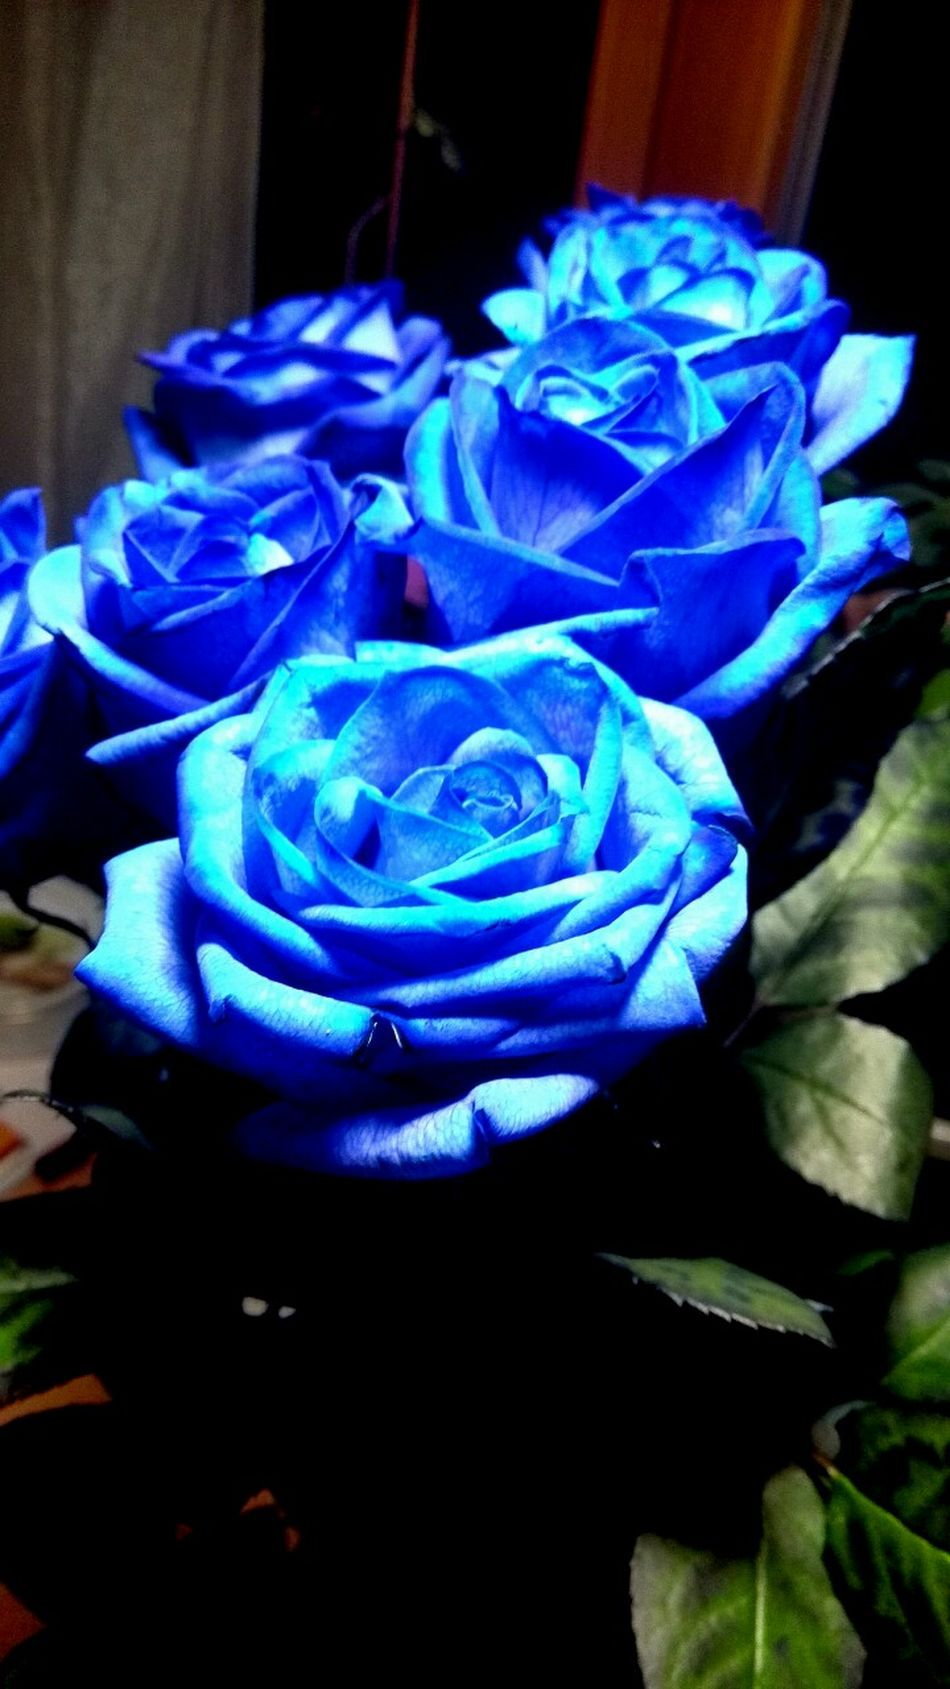 Flowers Bouquet Memories Roses Blue Beautiful Special Day Lovely Fresh Sweet Smell